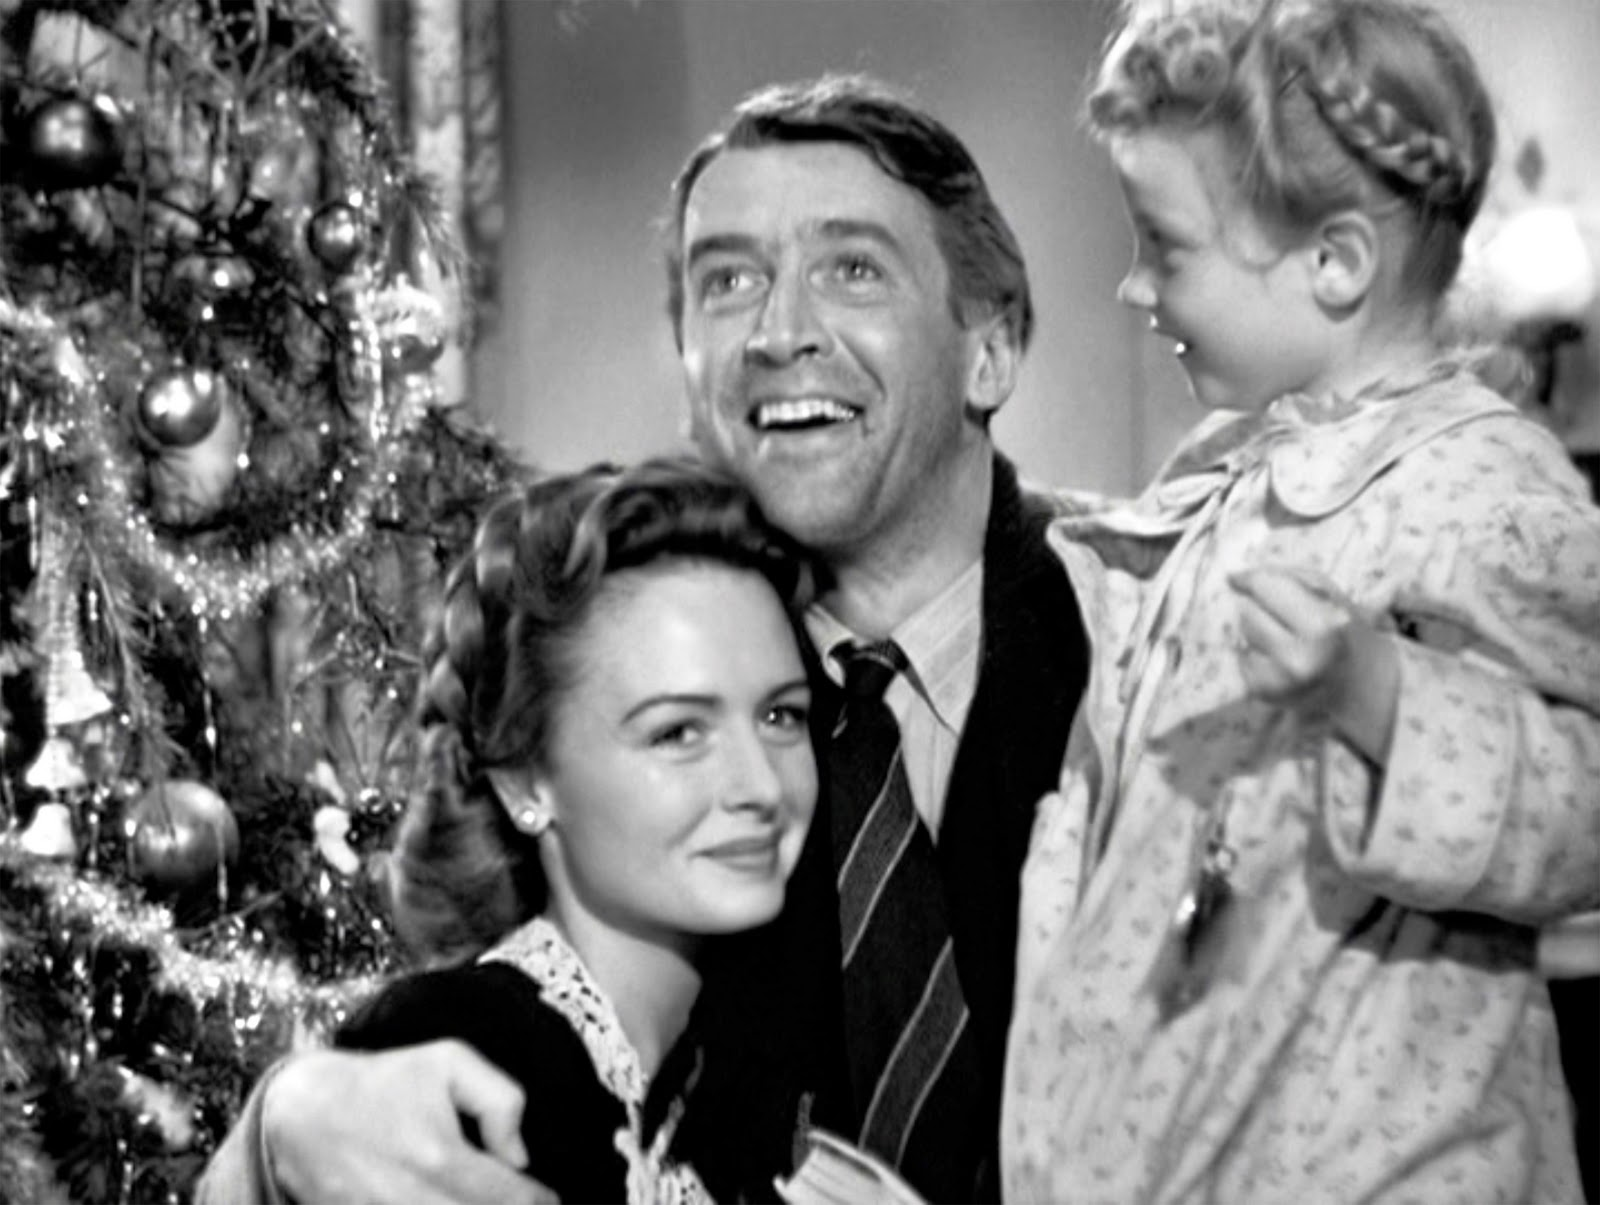 It's A Wonderful Life family smiling